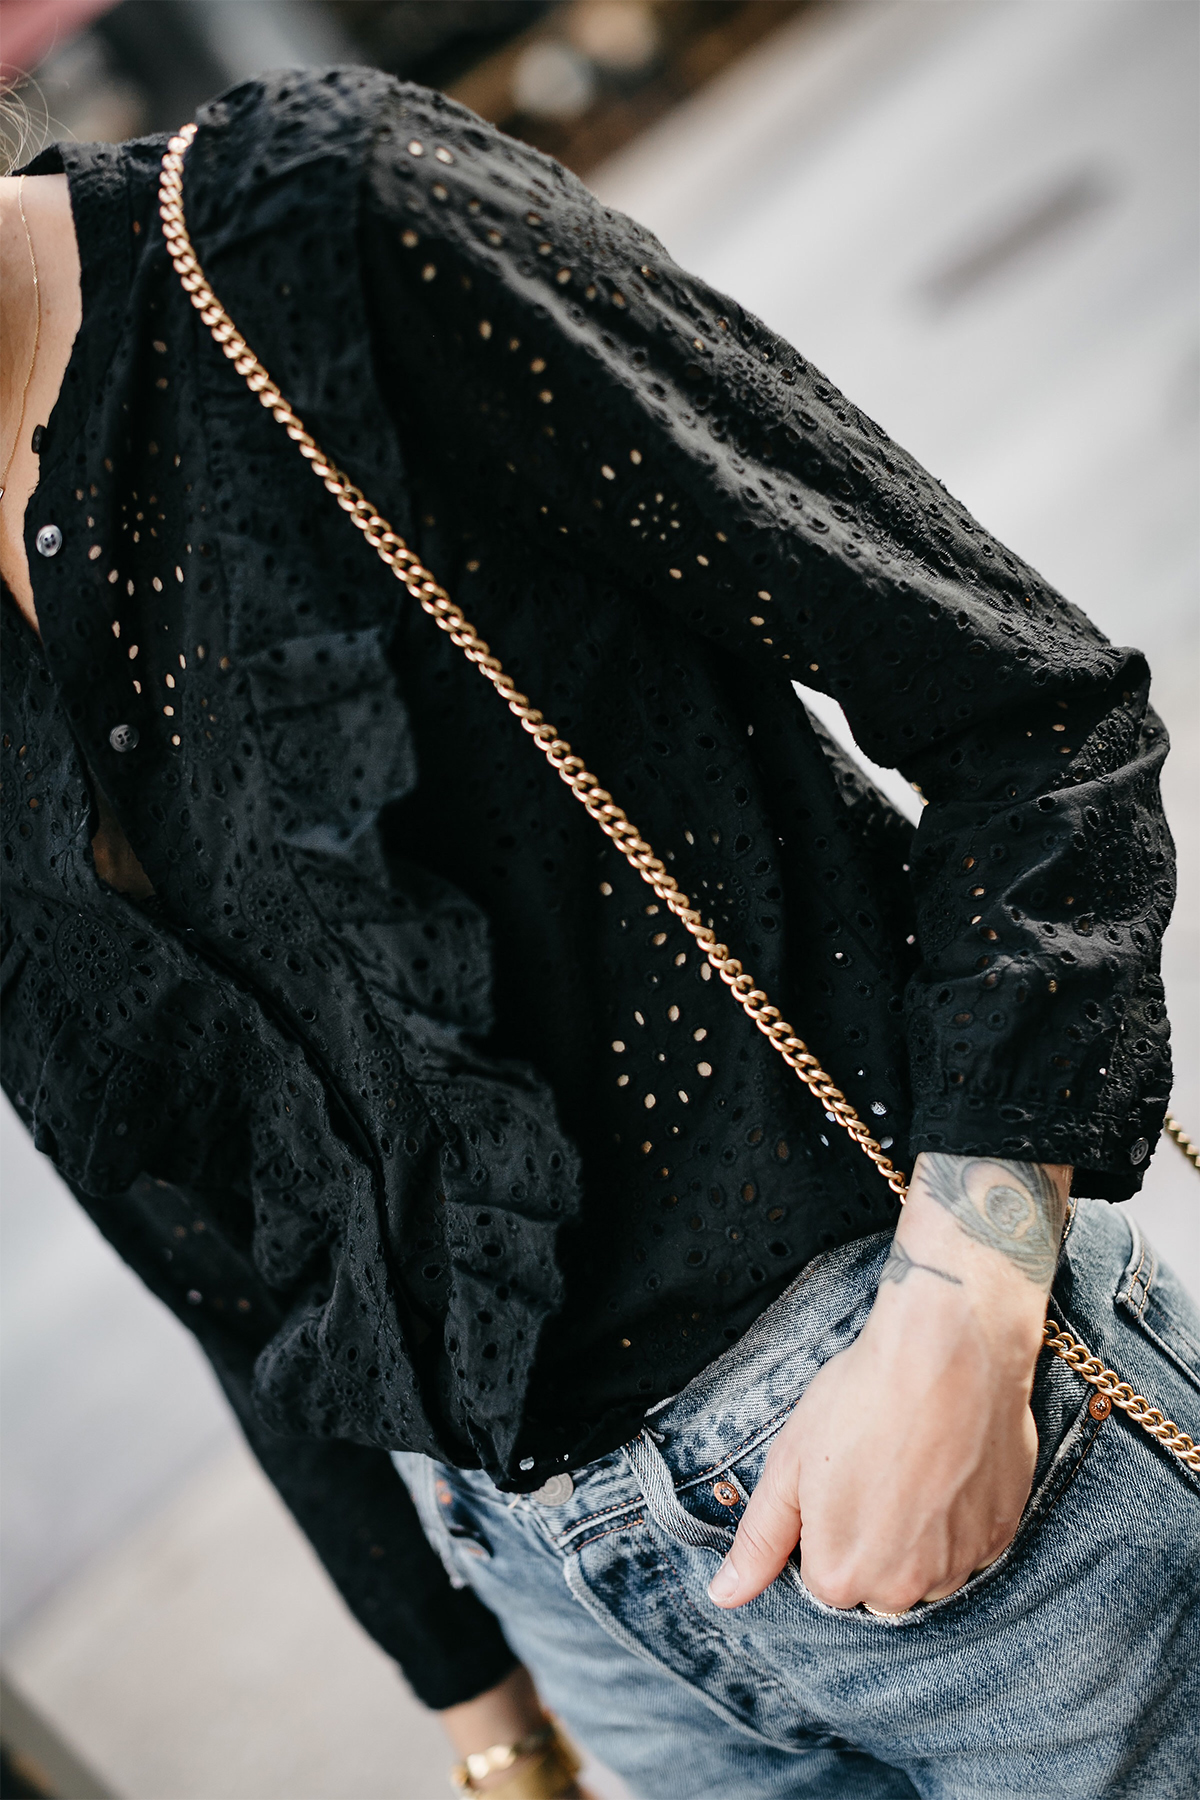 Madewell Black Eyelet Blouse Fashion Jackson Dallas Blogger Fashion Blogger Street Style